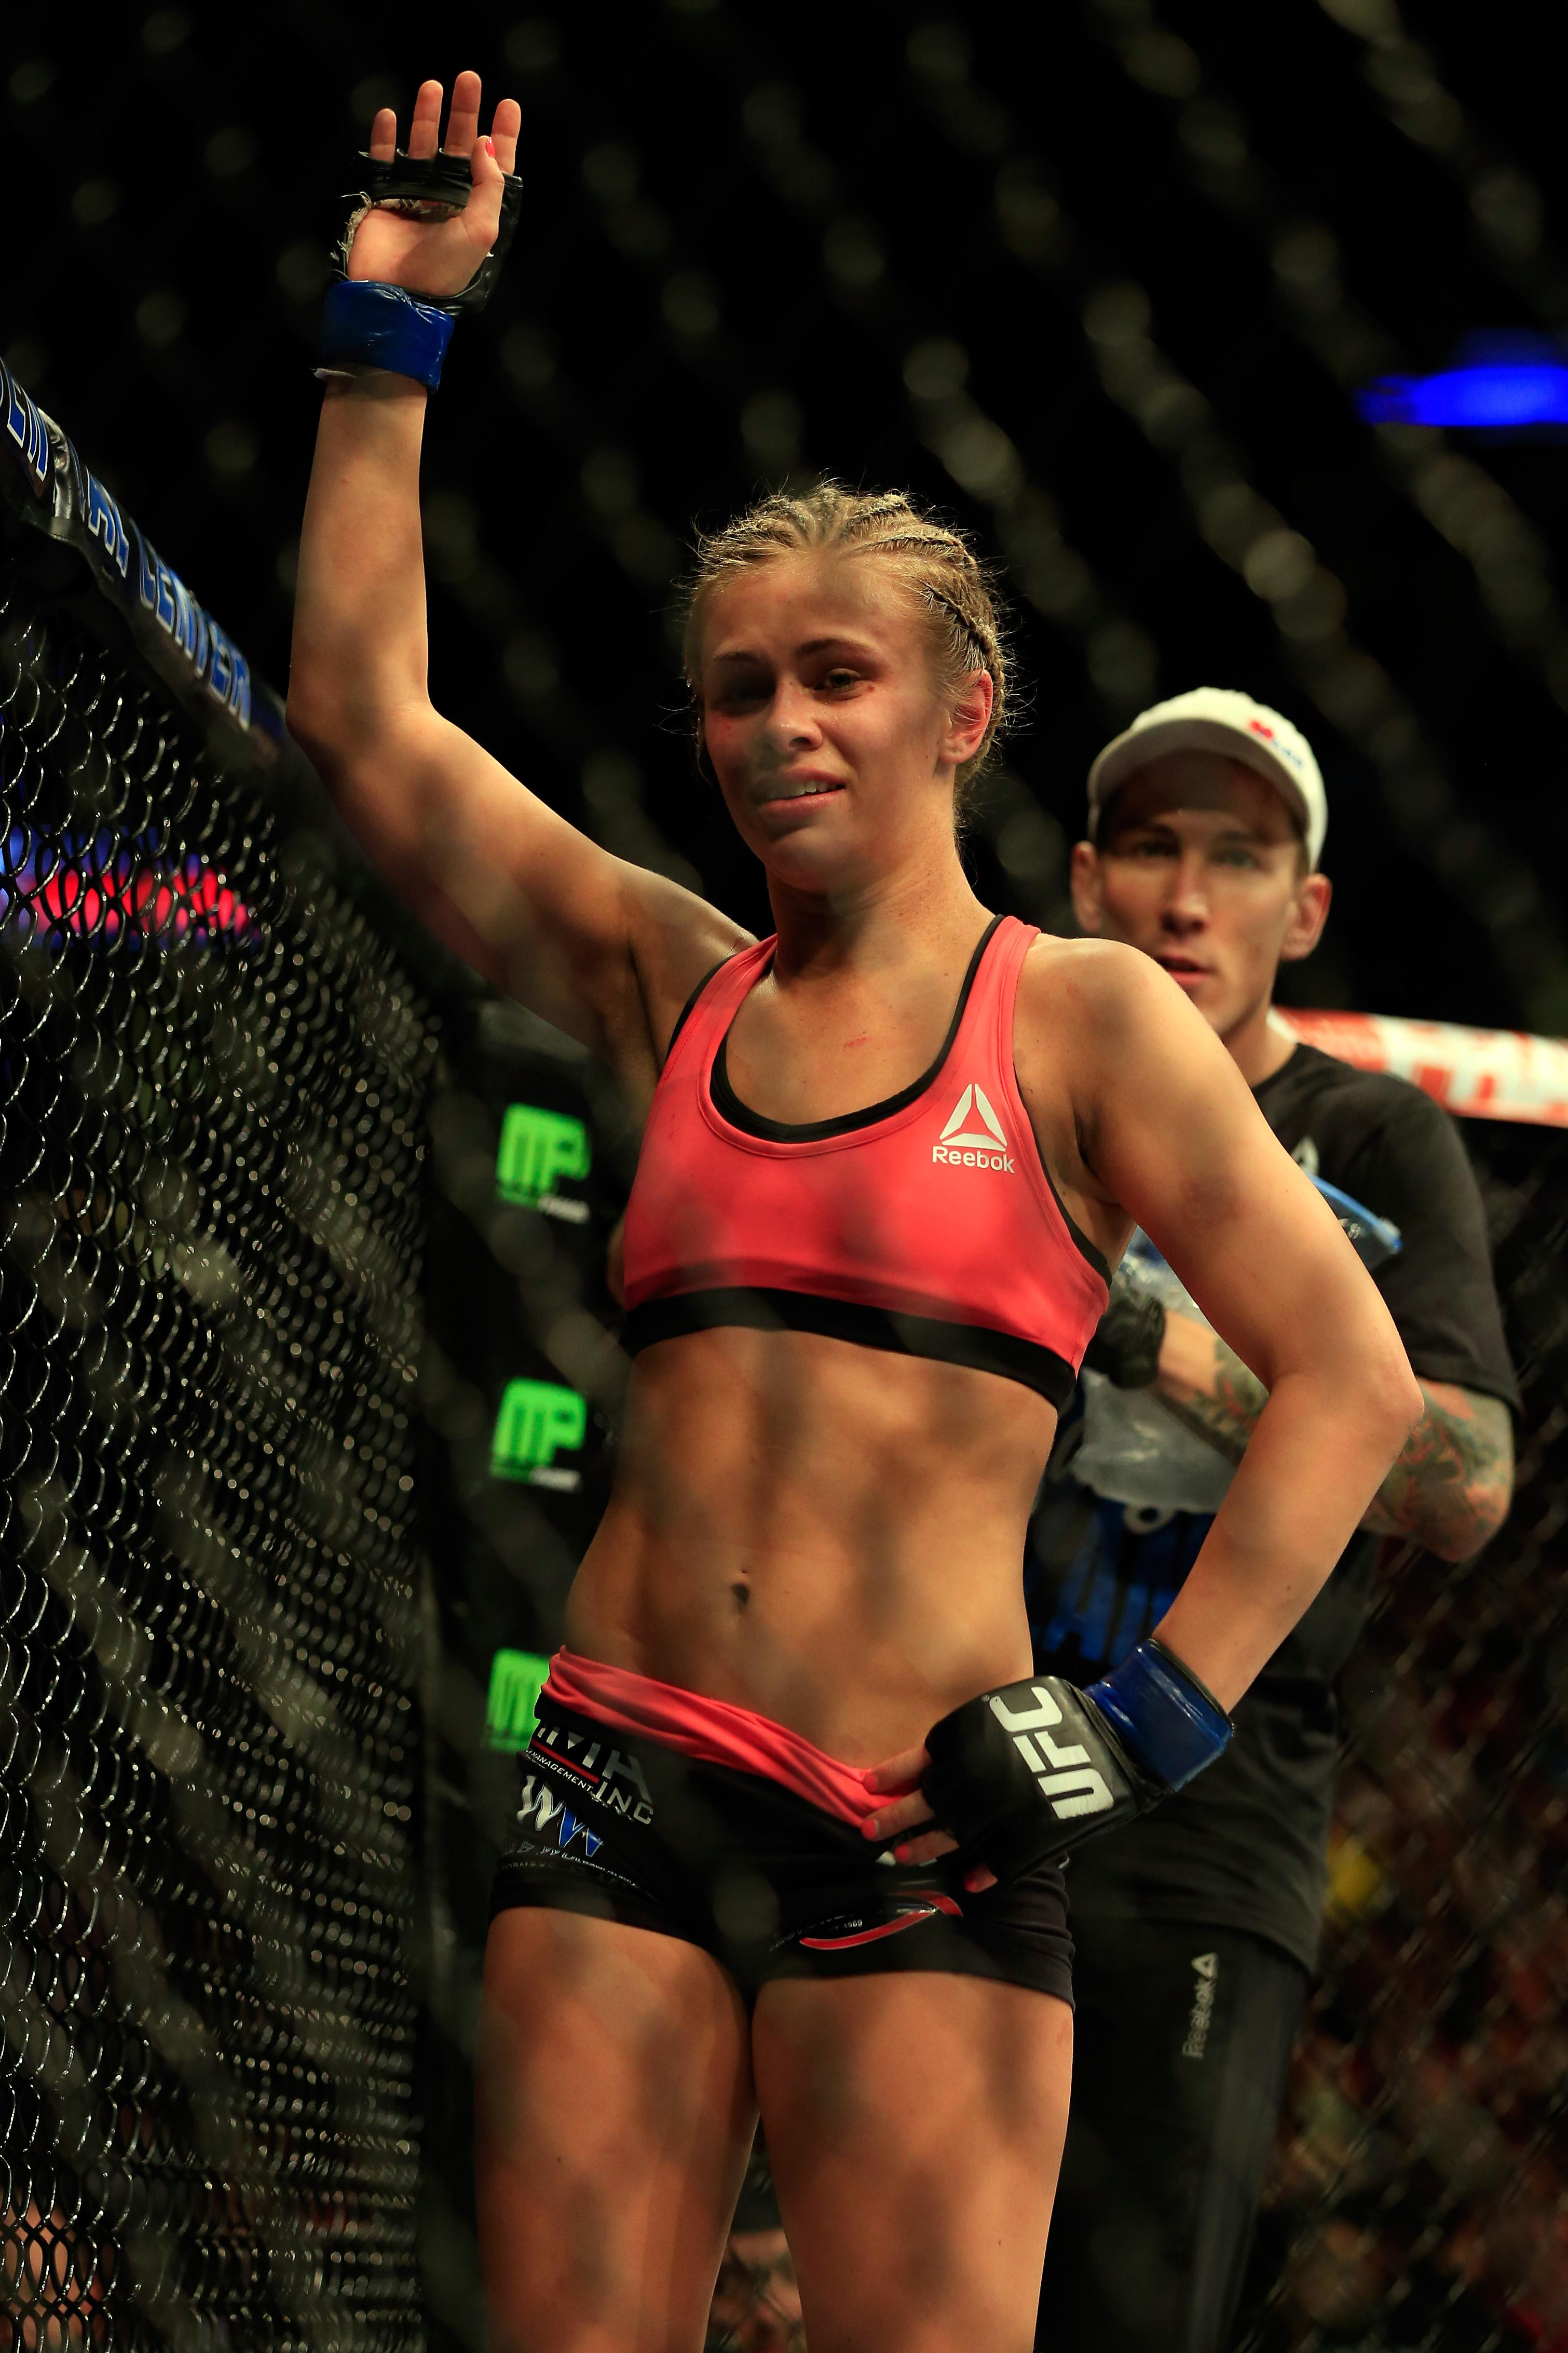 Paige VanZant's comeback fight could be in jeopardy